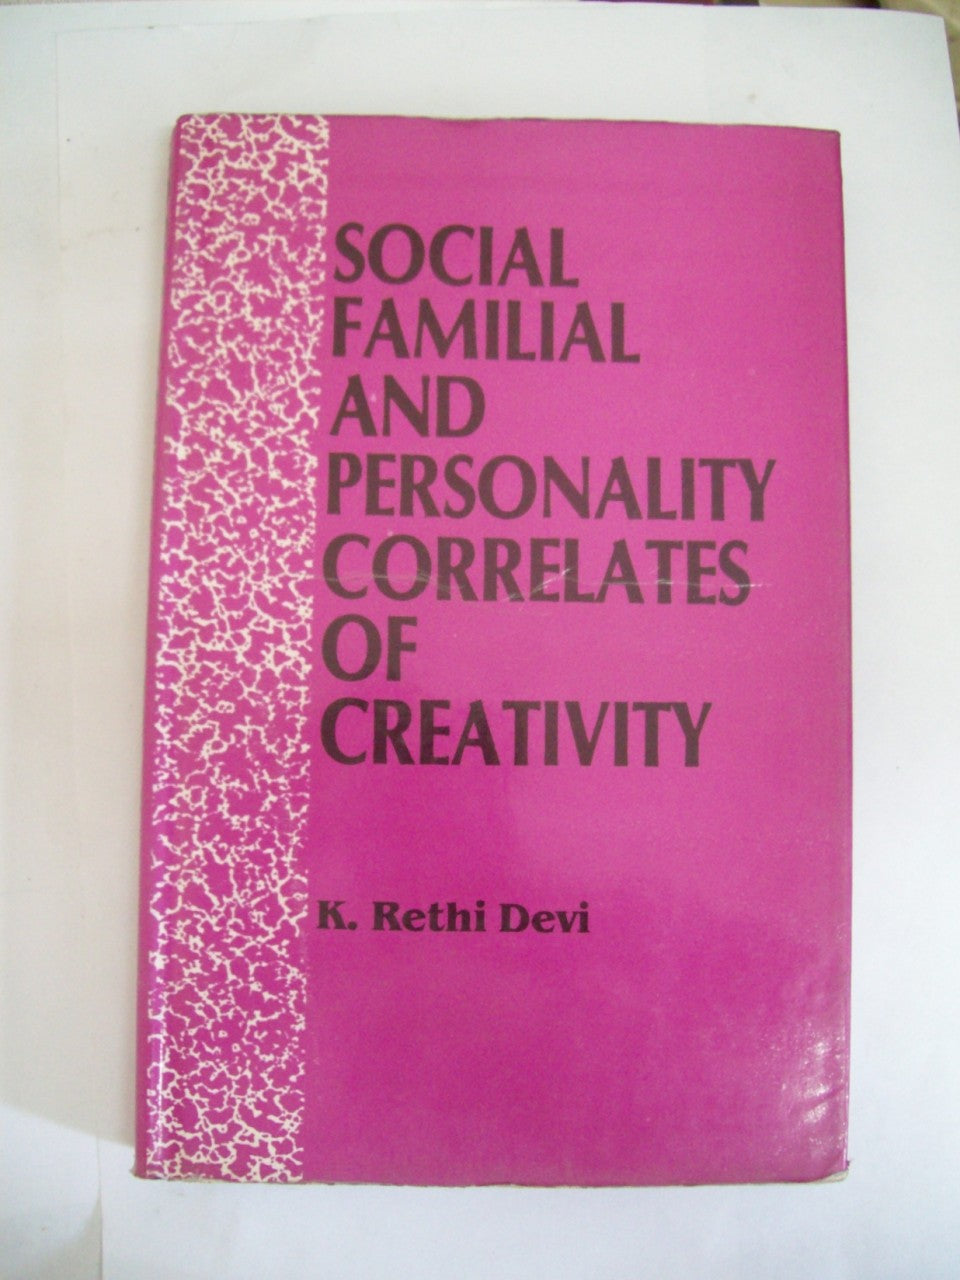 Social, Familial And Personality Correlates Of Creativity